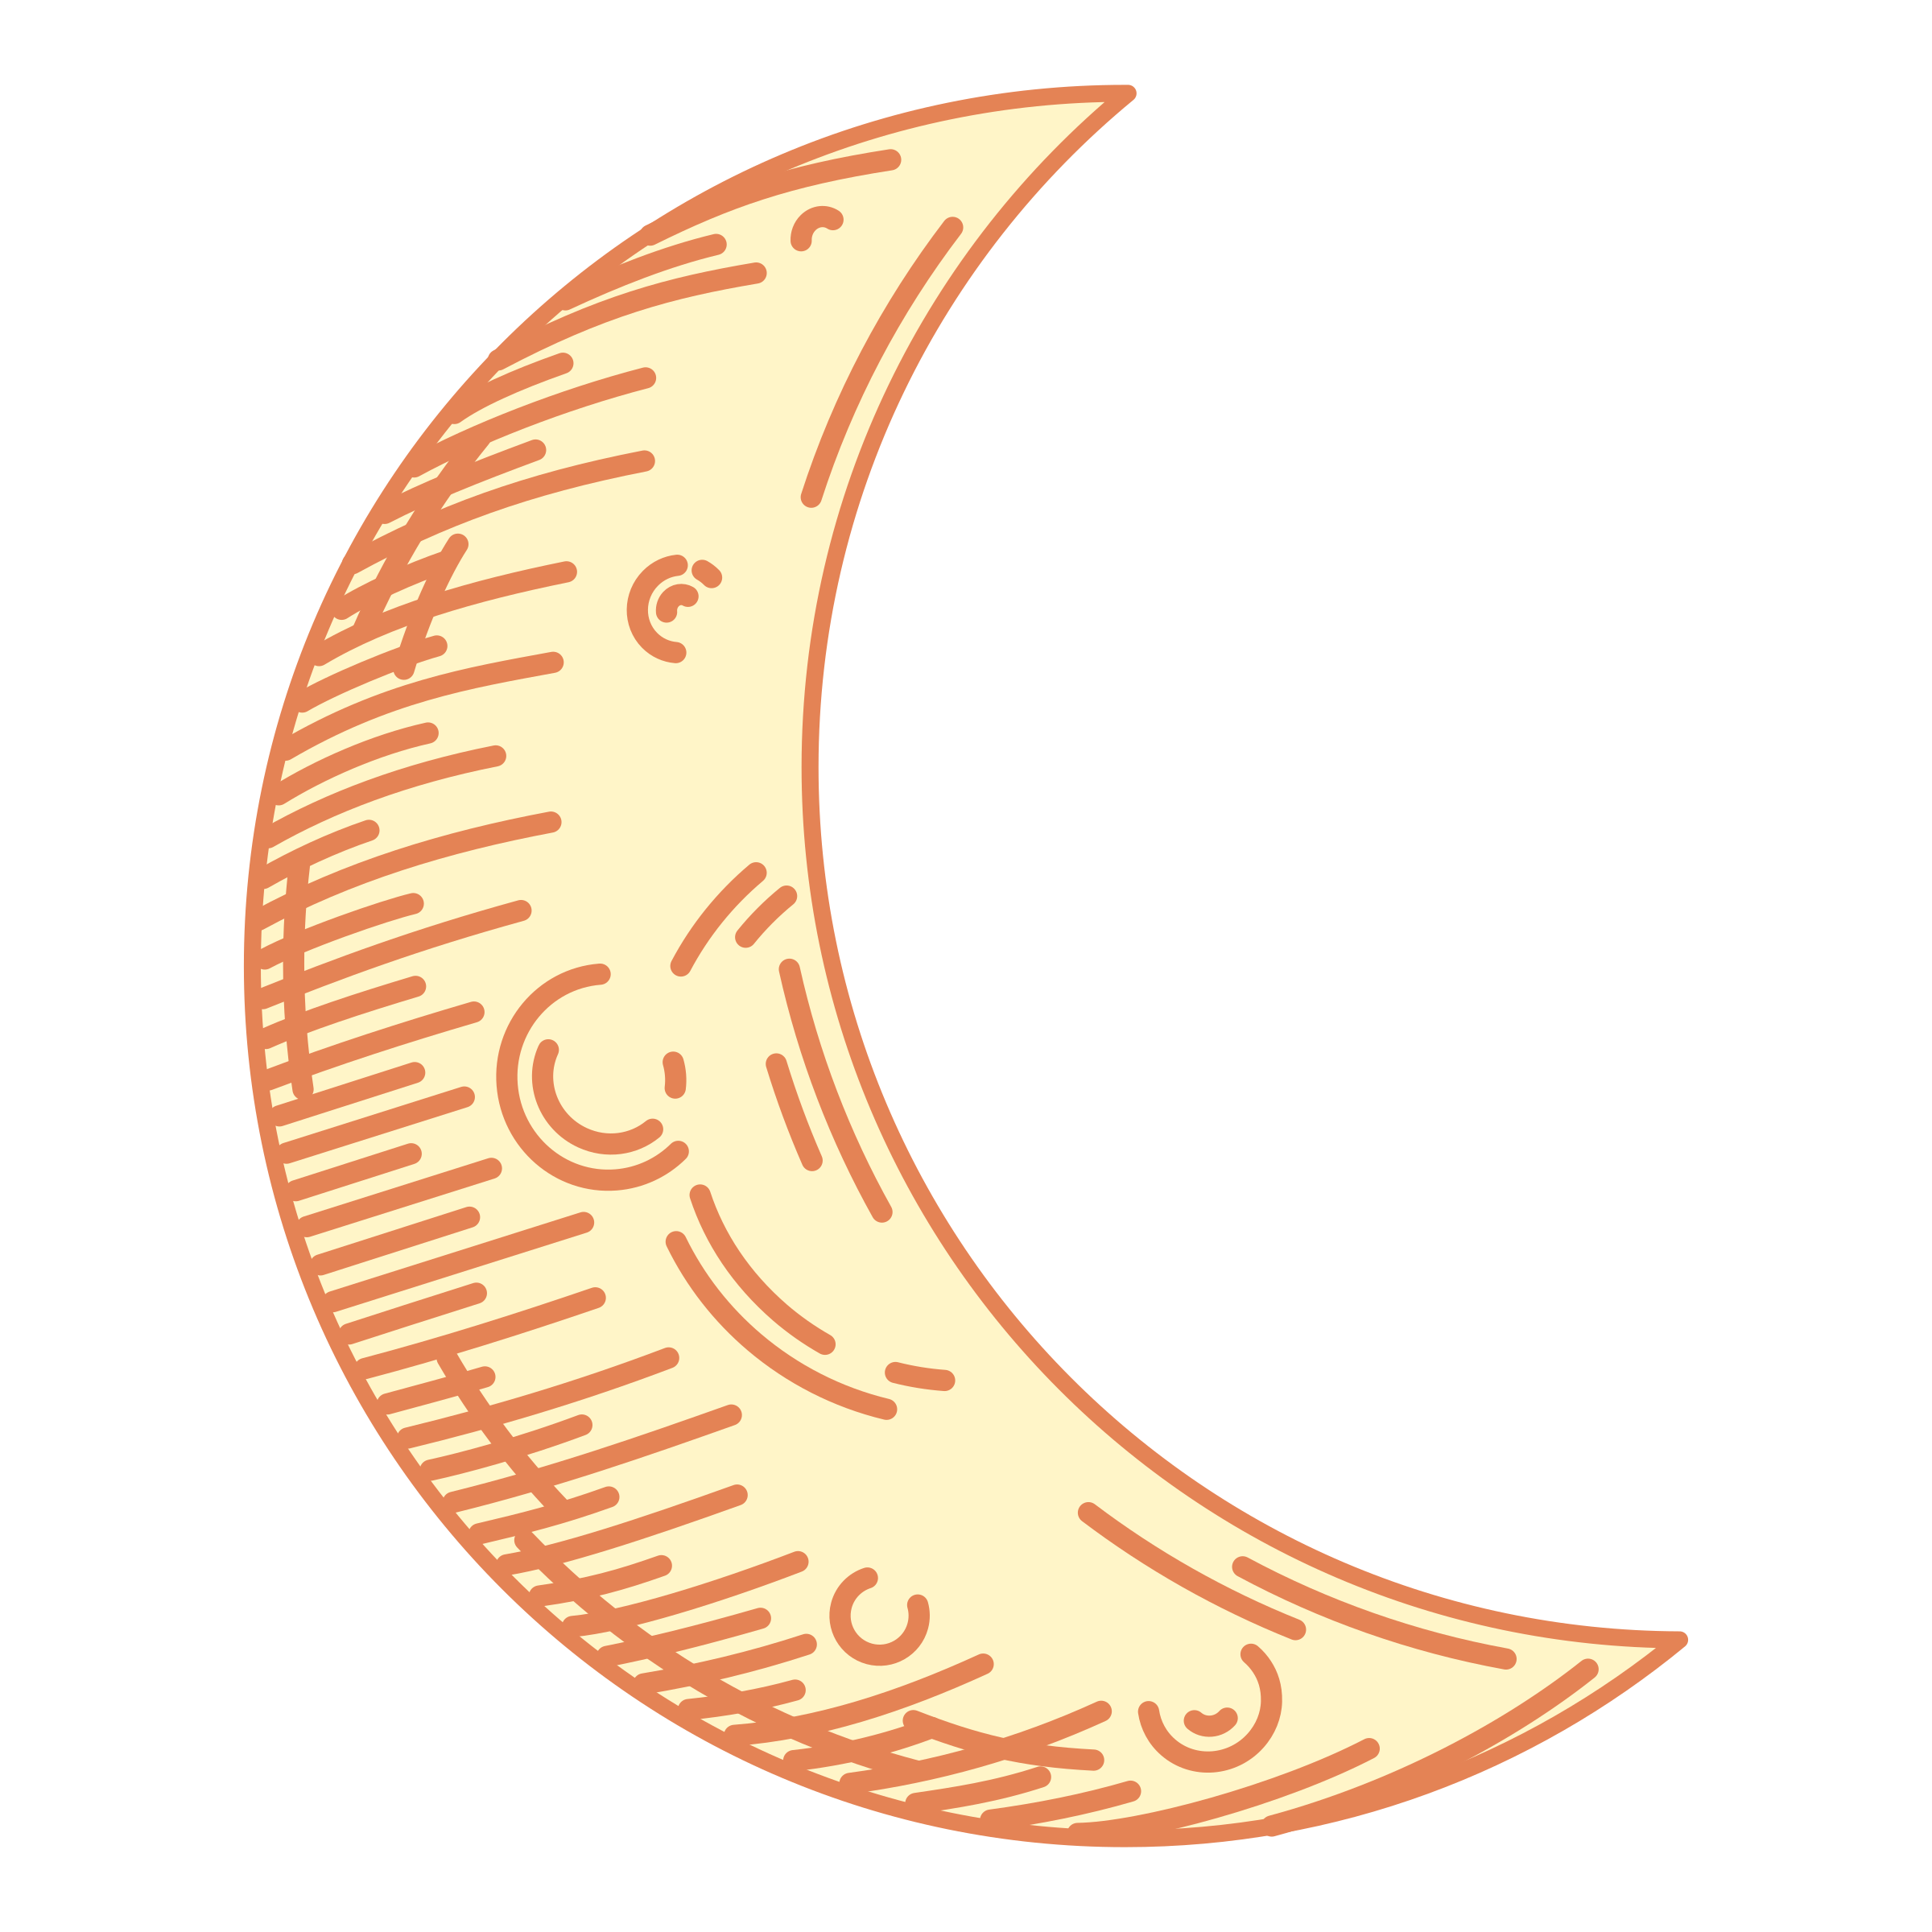 Crescent moon by m1981